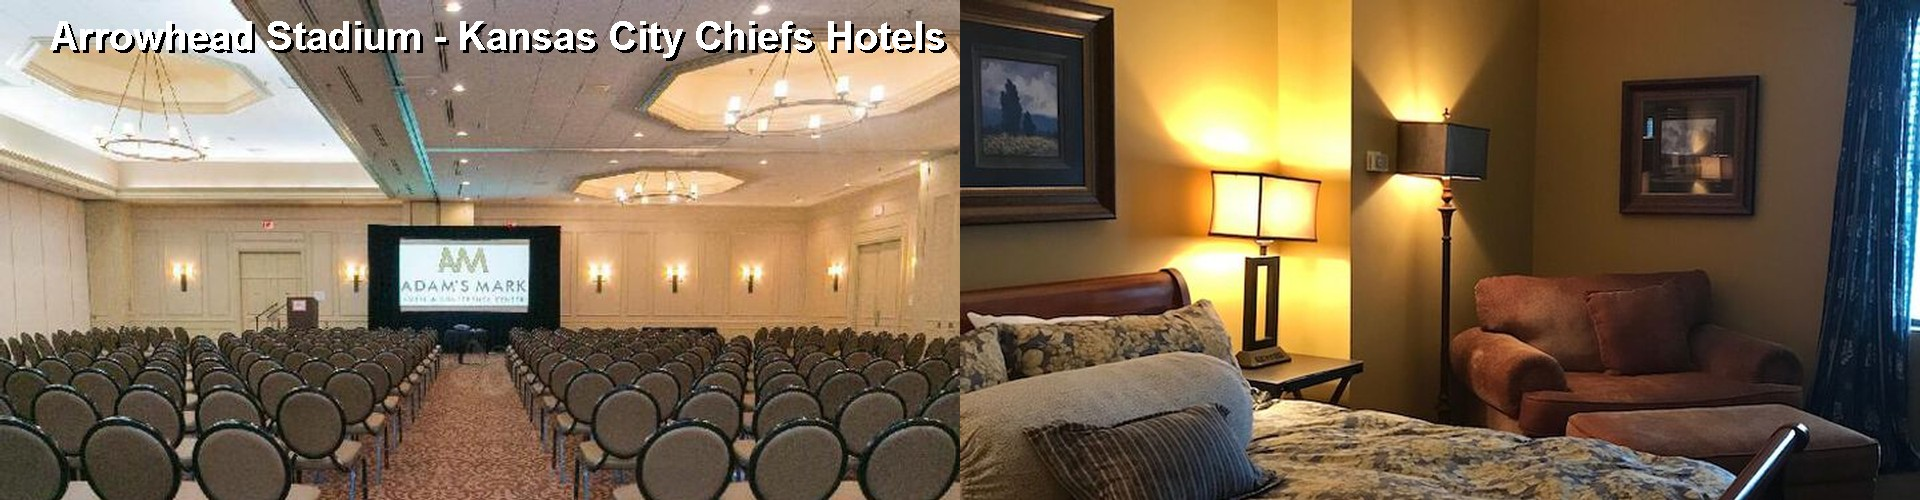 5 Best Hotels near Arrowhead Stadium - Kansas City Chiefs